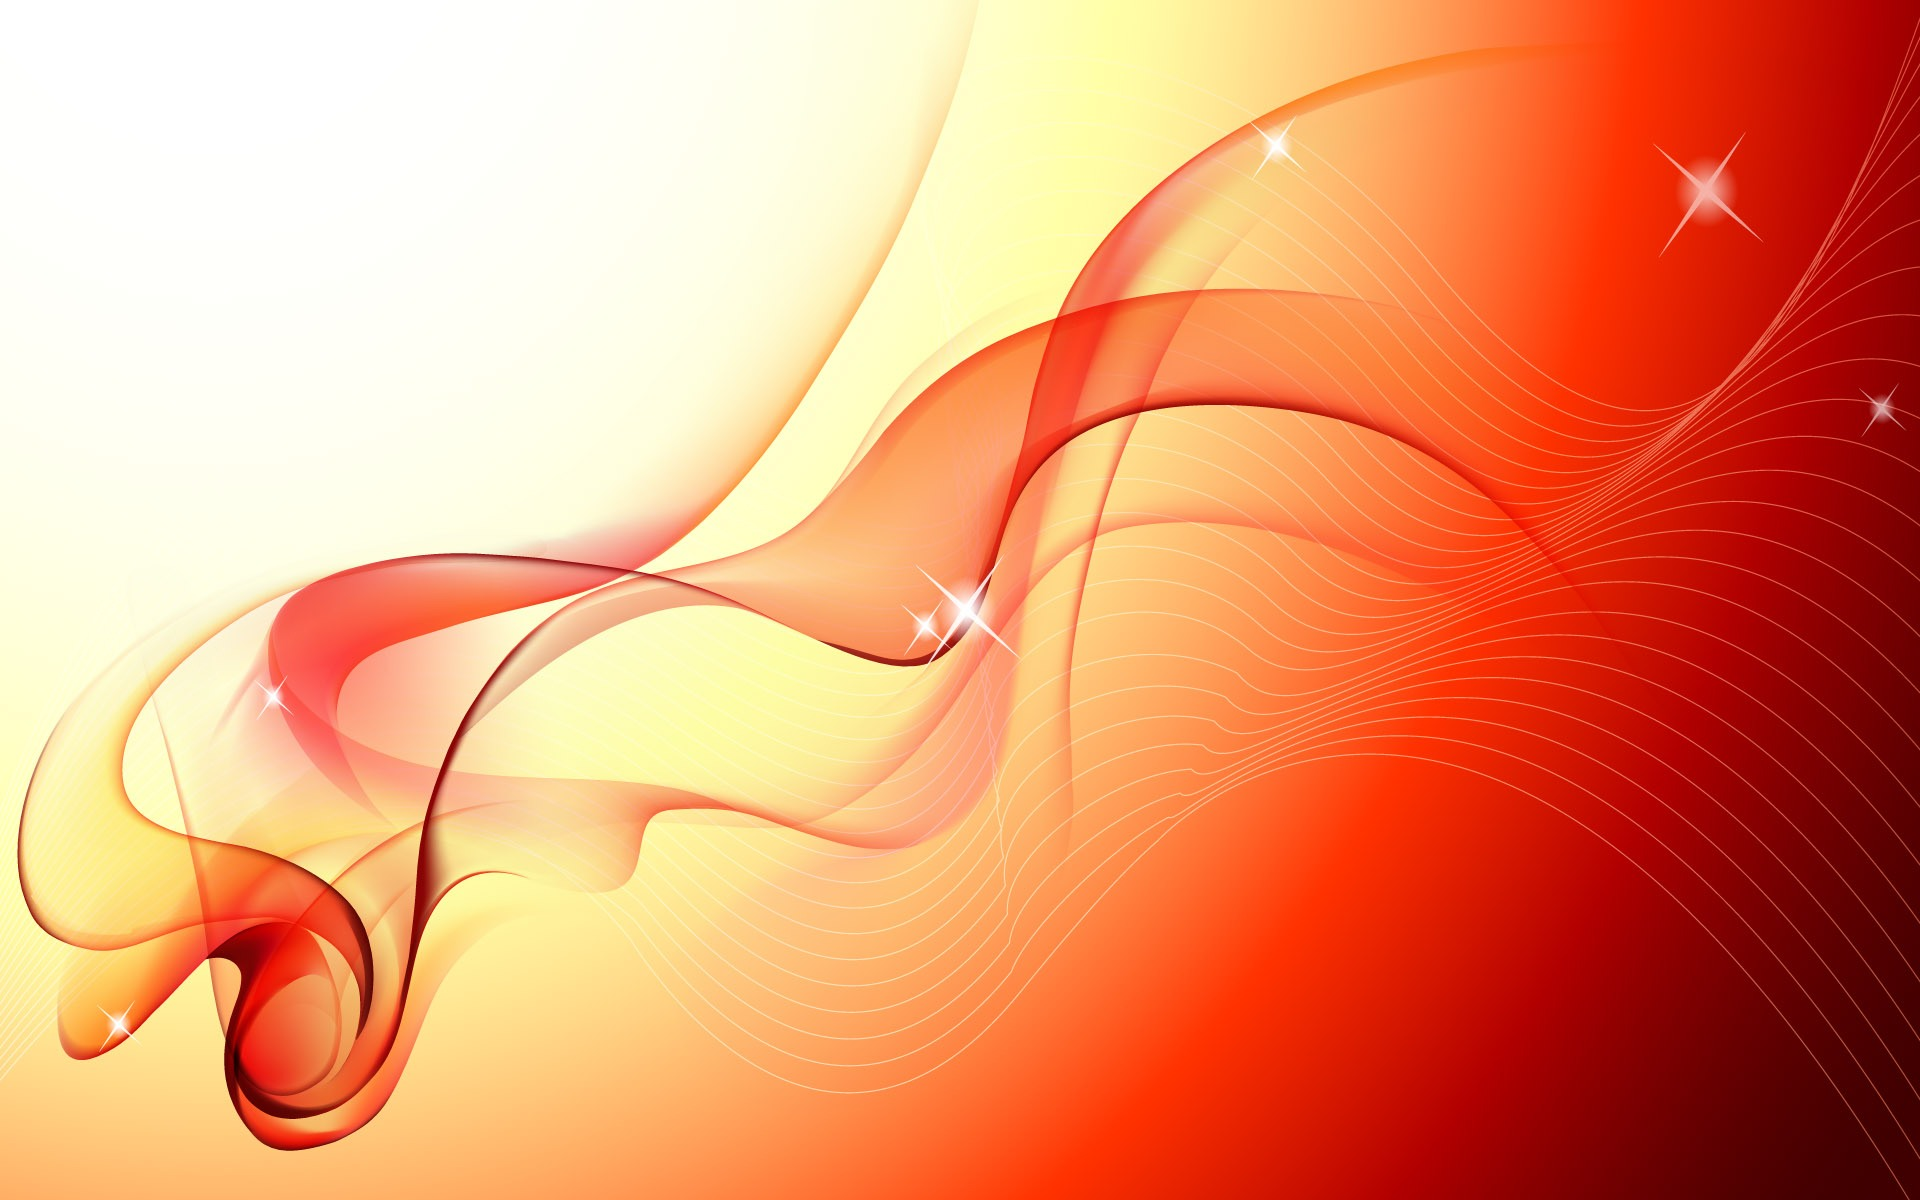 Ribbon Orange Background Web Original Desktop wallpaper